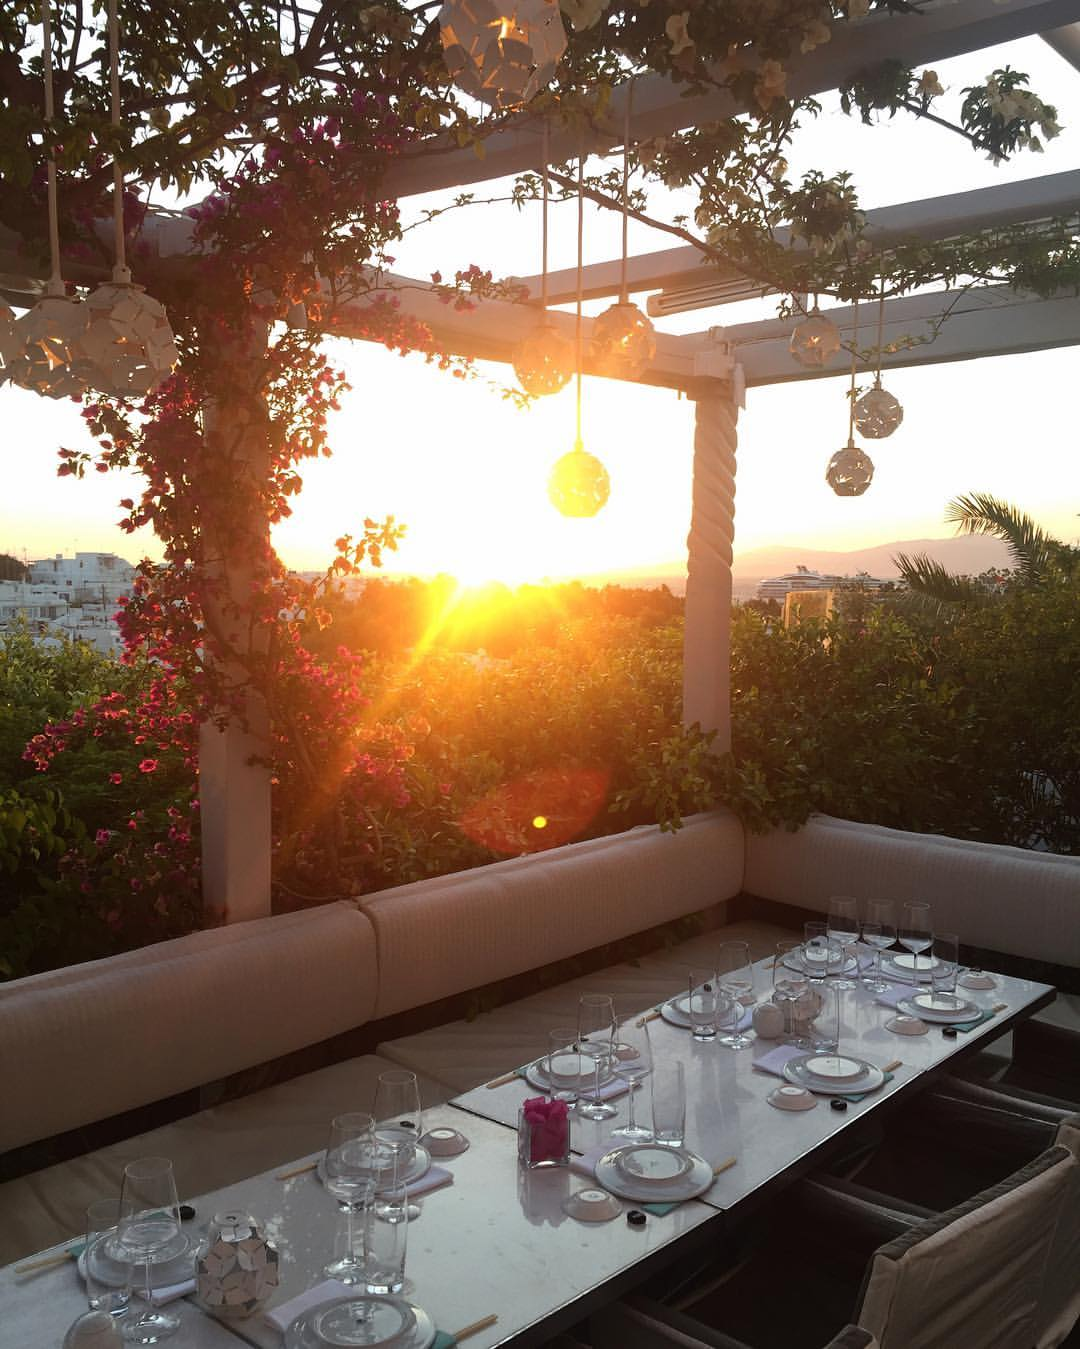 The sunset at Nobu for the Zimmermann x Net-A-Porter capsule launch. July 2016